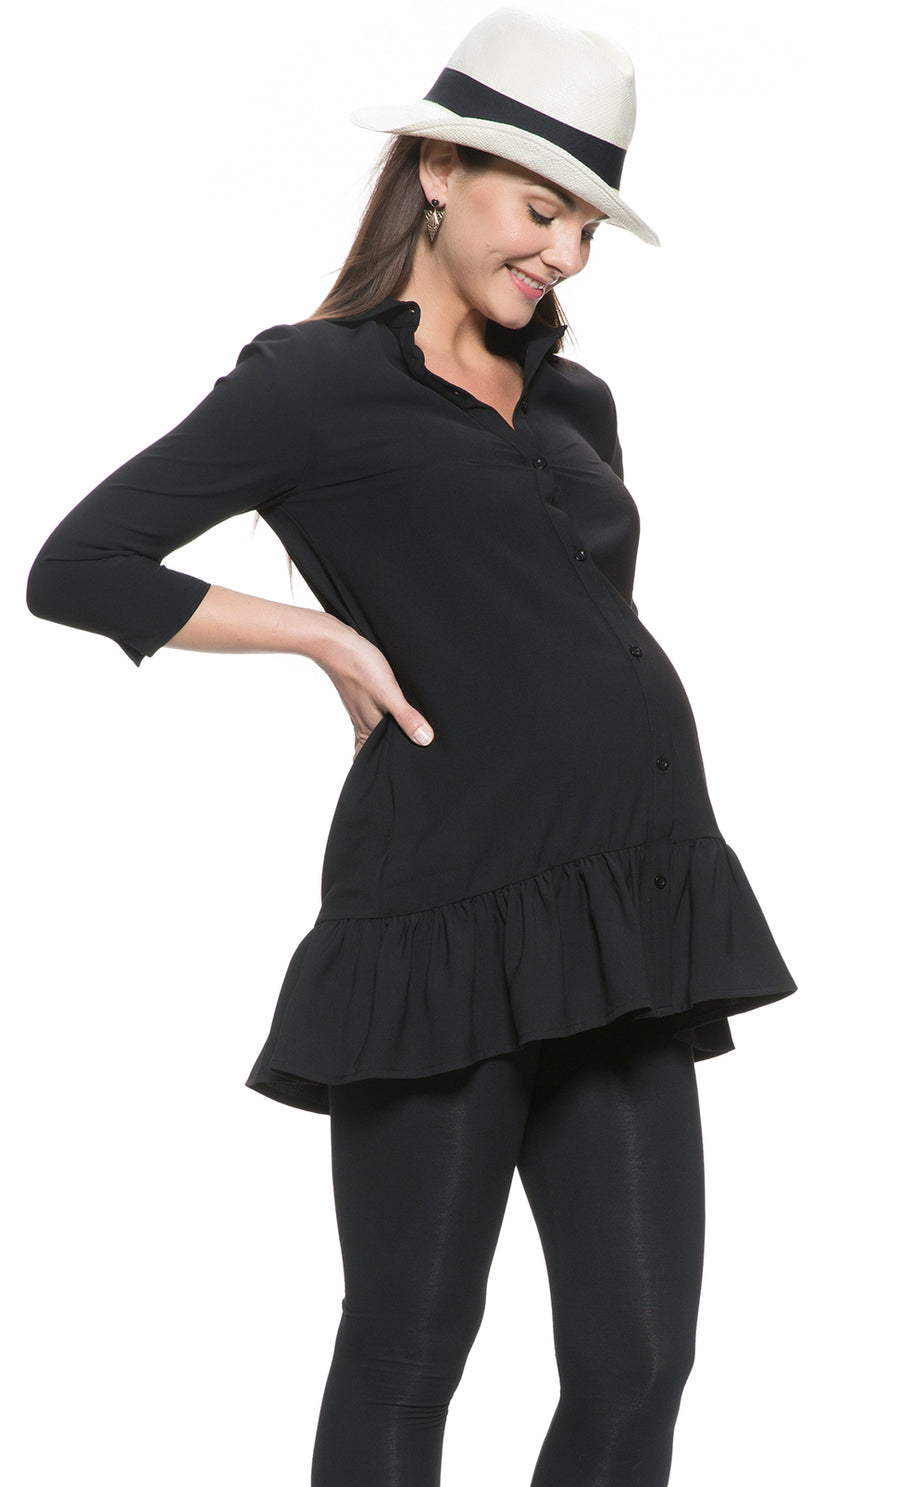 a9200df6329 Maternity Tops - Modern & Comfortable Pregnancy Clothes - Mayarya ...